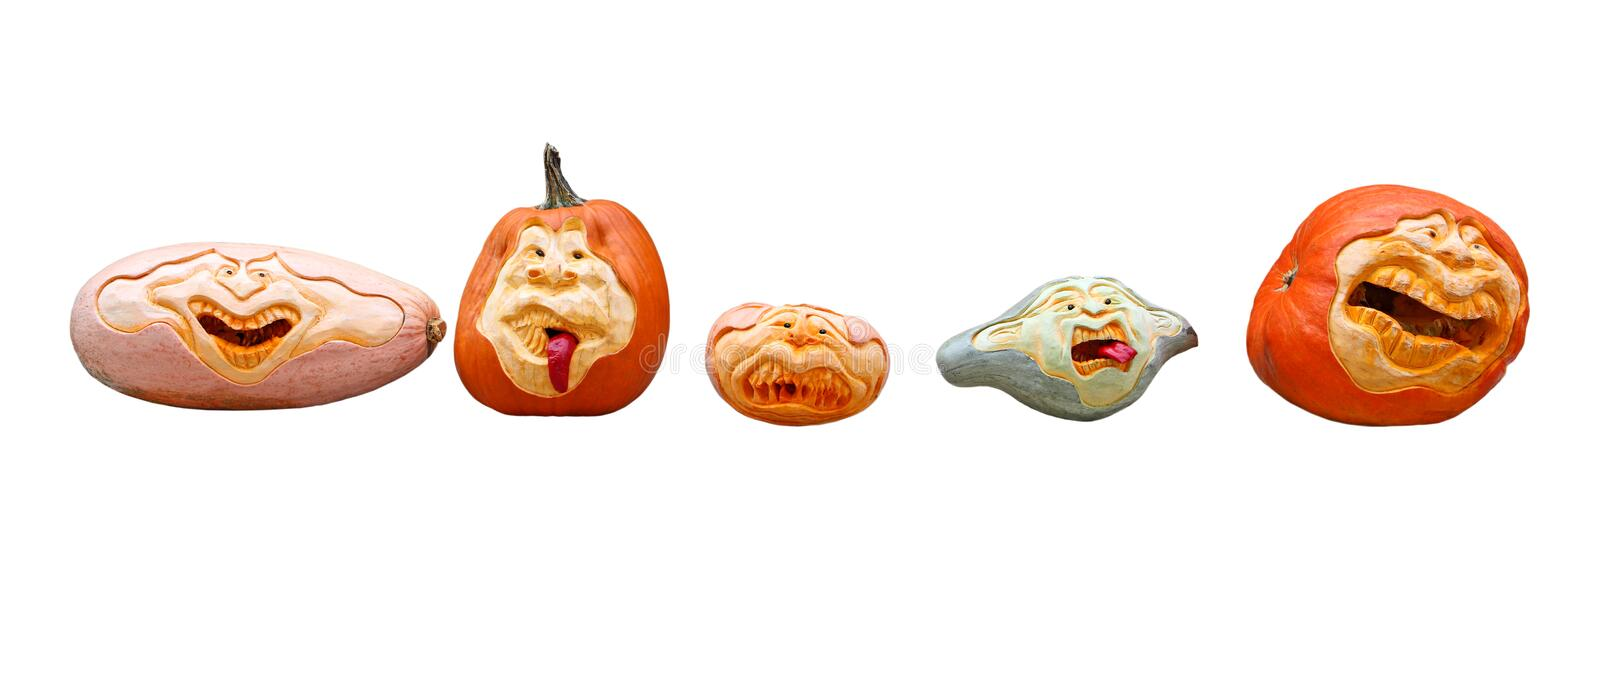 Pumpkin Heads royalty free stock image